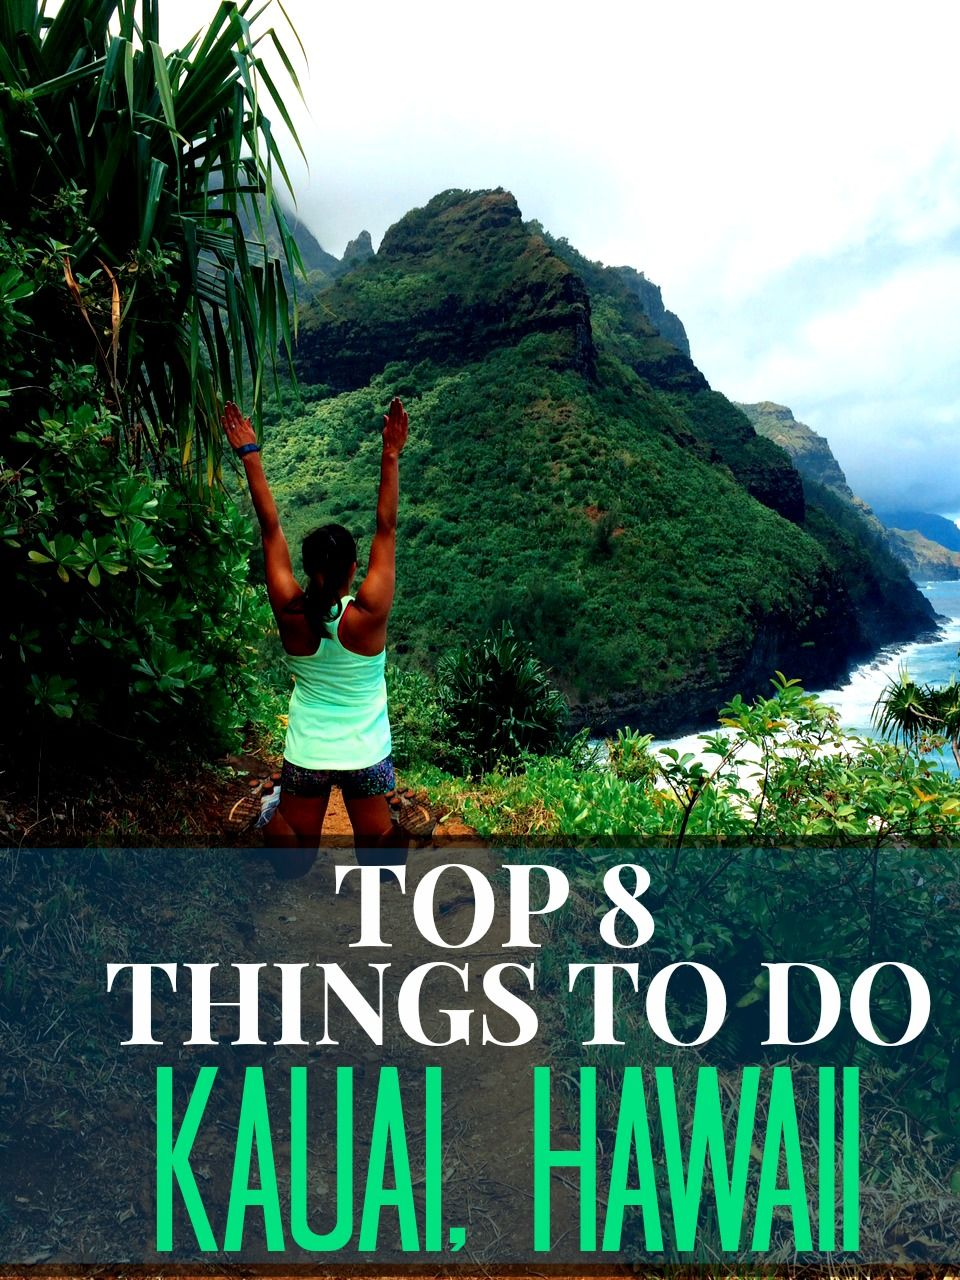 must do things to do in kauai, hawaii! love this list! | travel